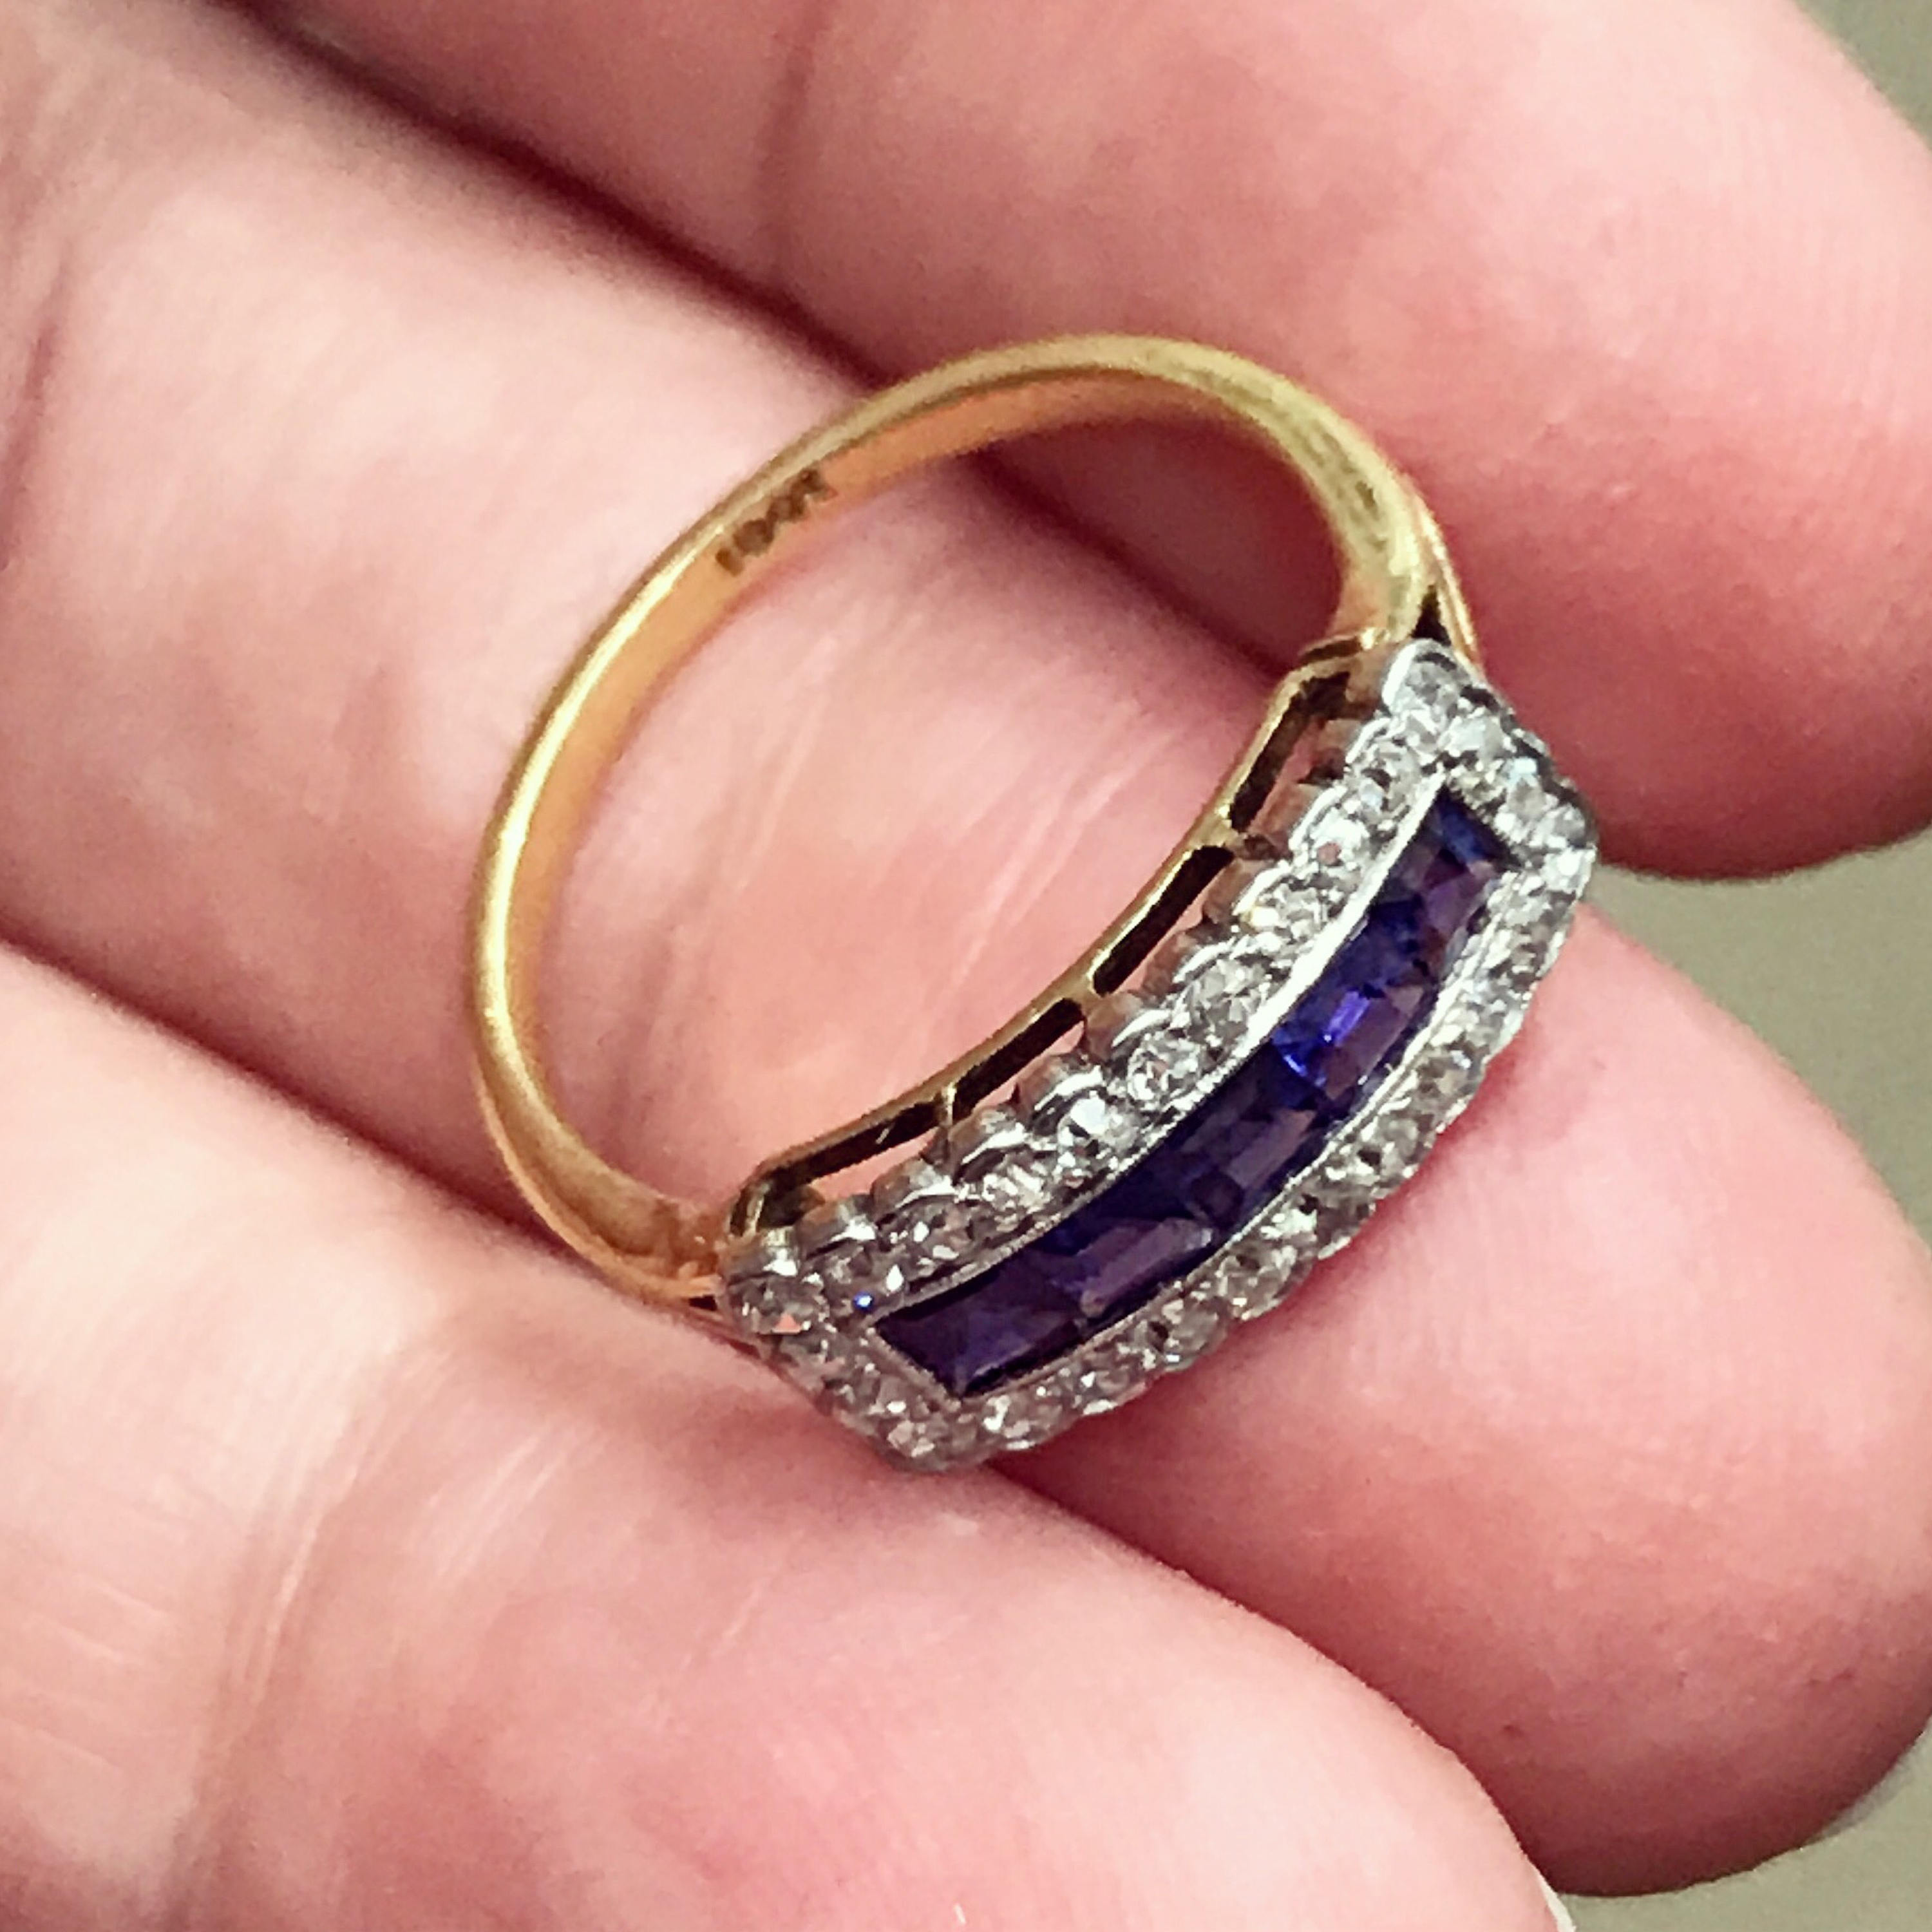 Edwardian/Art Deco sapphire and diamond ring from about 1920 | Karen ...